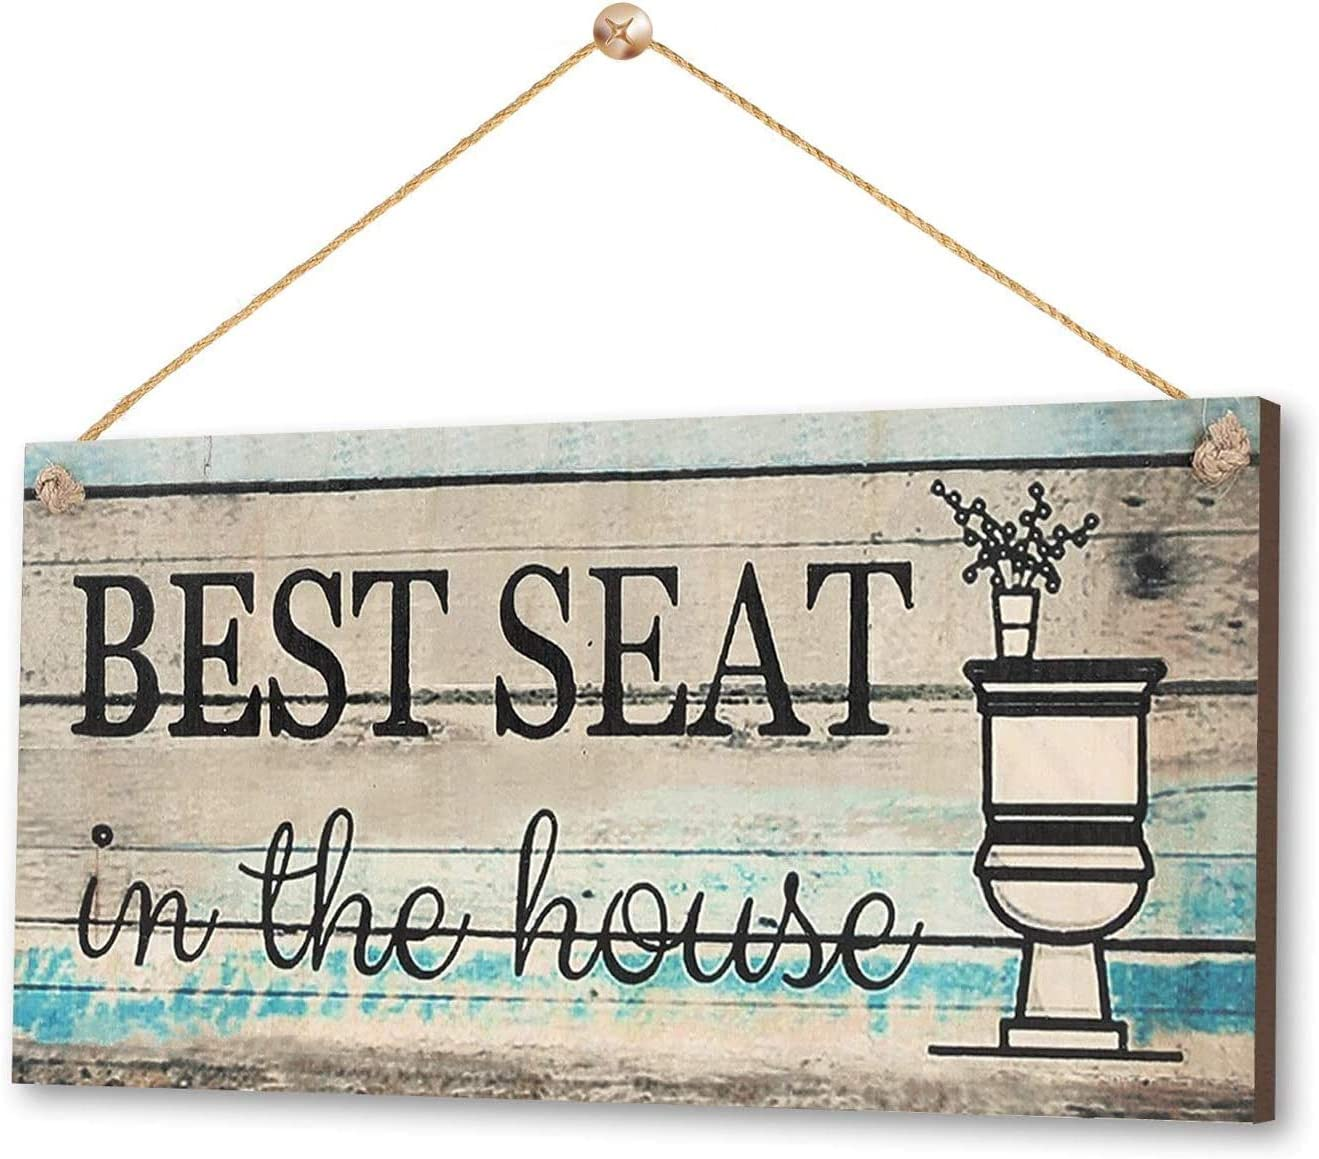 "LEJHOME Bathroom Hanging Wall Decor Sign 14"" x 7""- Printed Wood Plaque Sign - Best Seat in the House- Farmhouse Rustic Wall Decor Art for Kids Guest Bathroom Decorations"